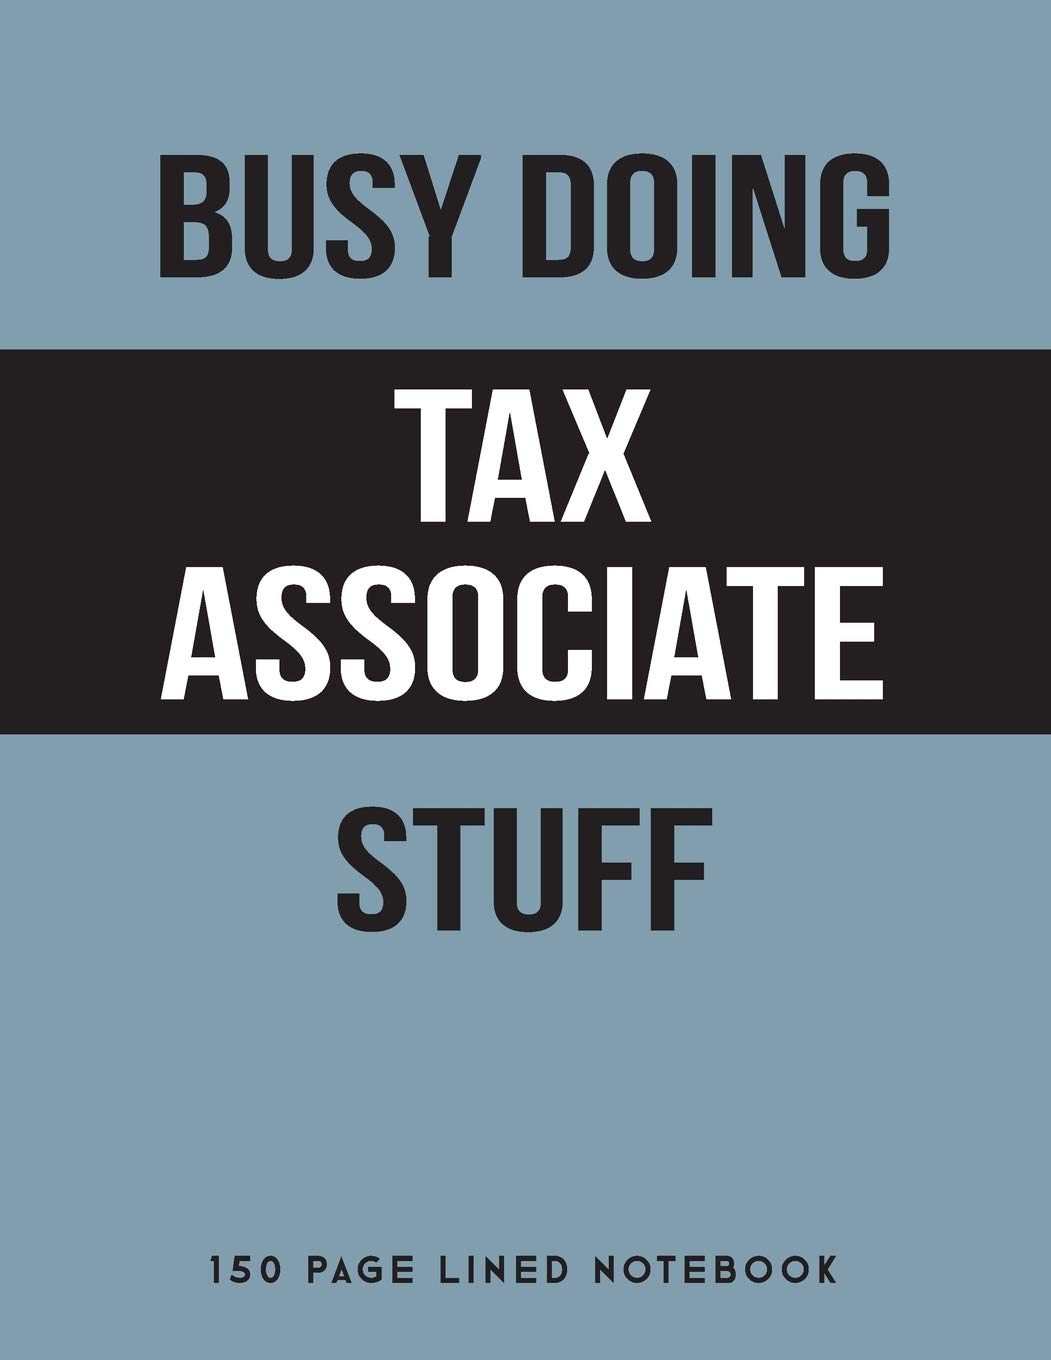 Busy Doing Tax Associate Stuff  150 Page Lined Notebook